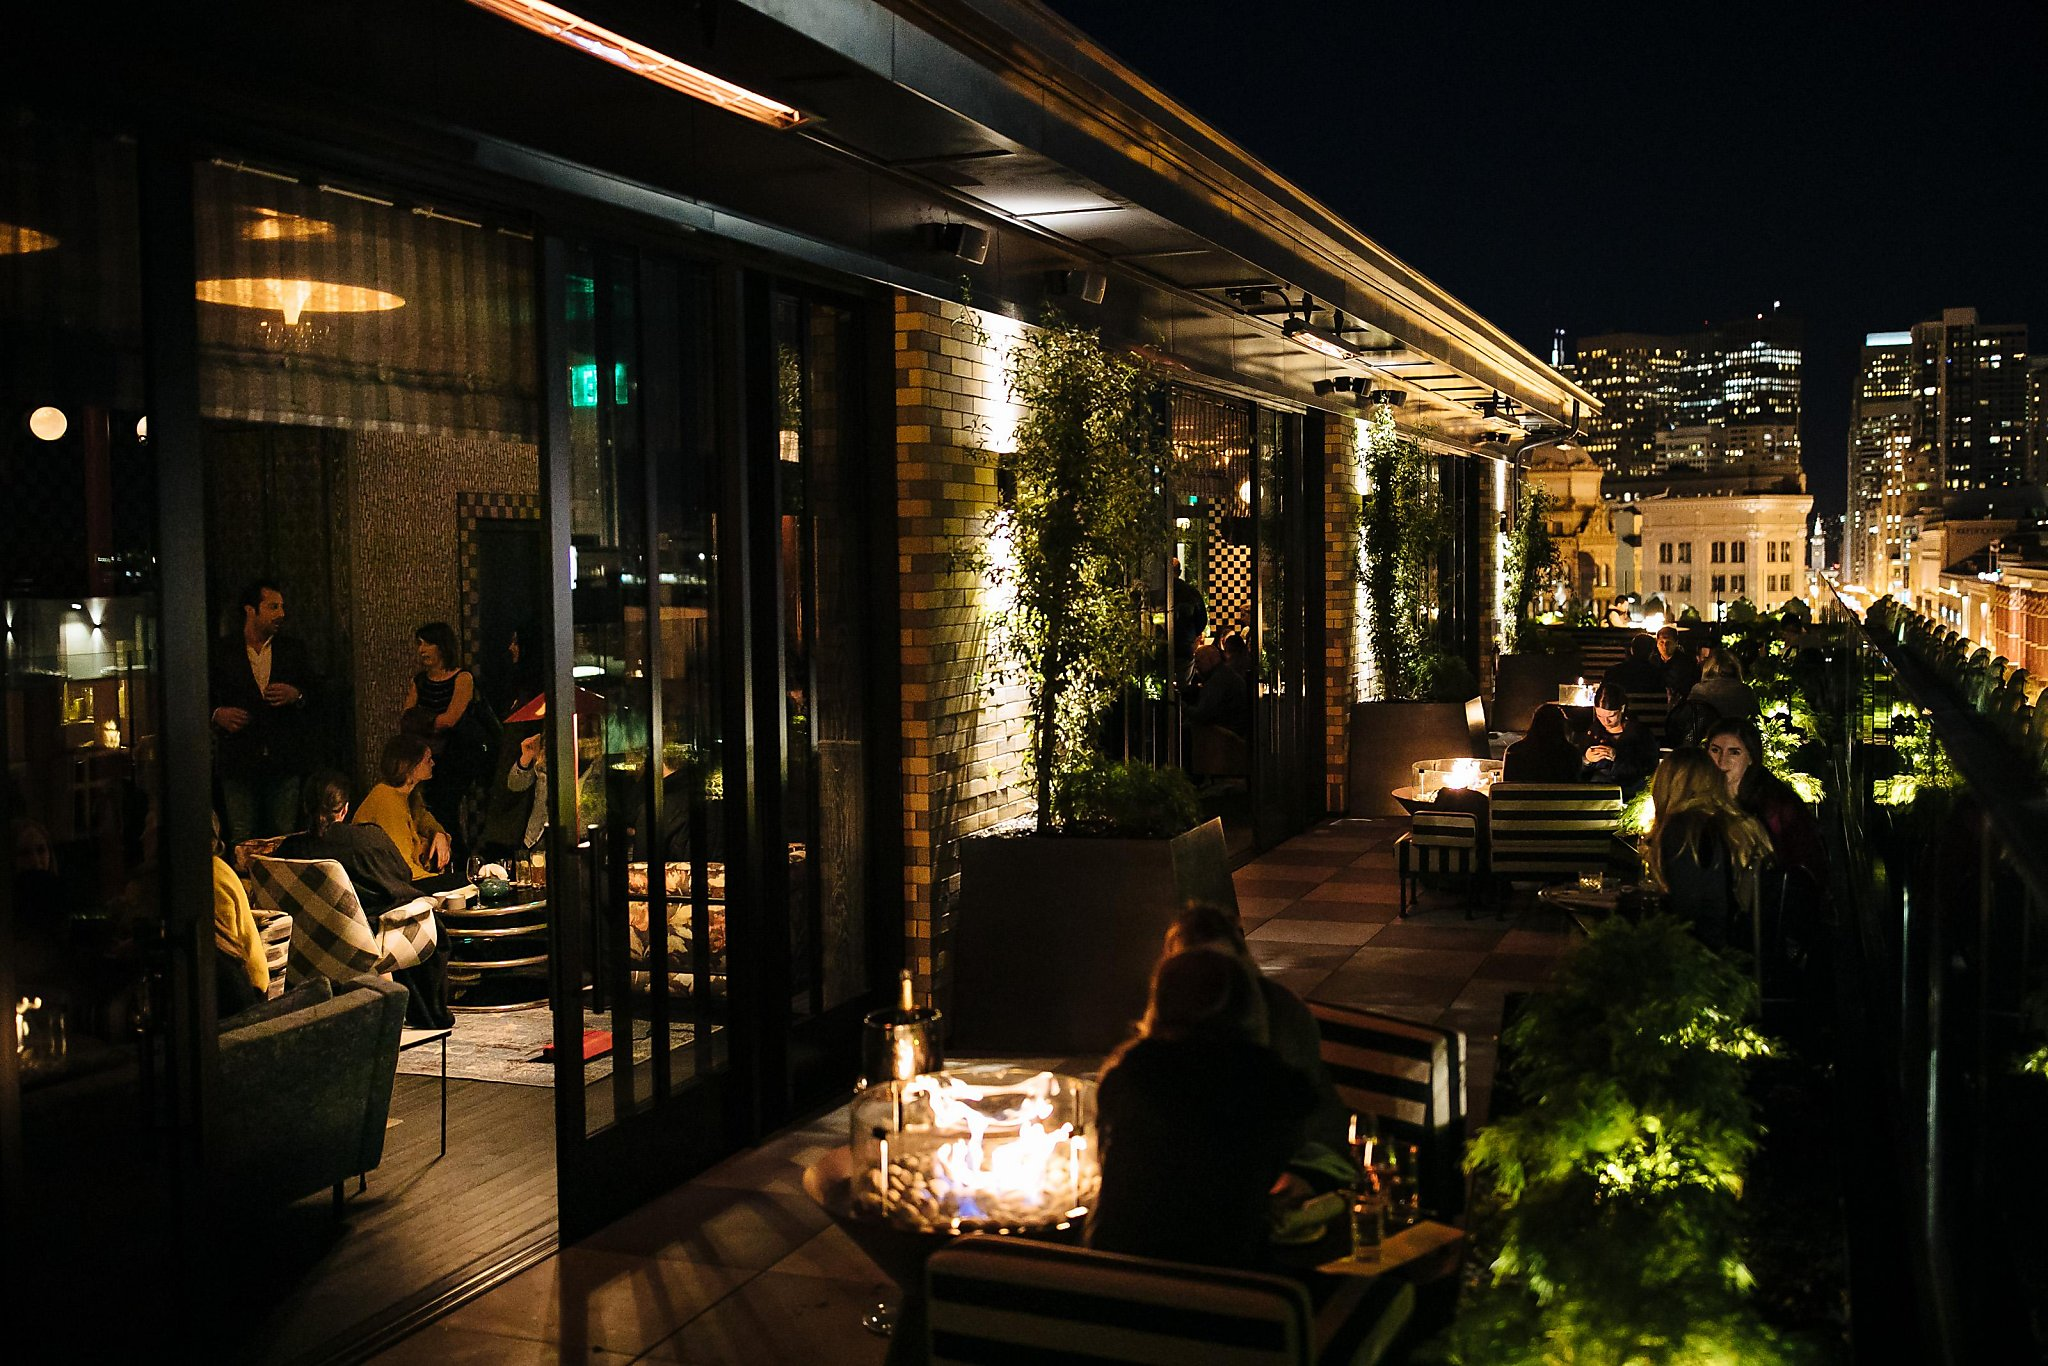 Rooftop Bar Charmaine S Unleashes Killer Views With Just A